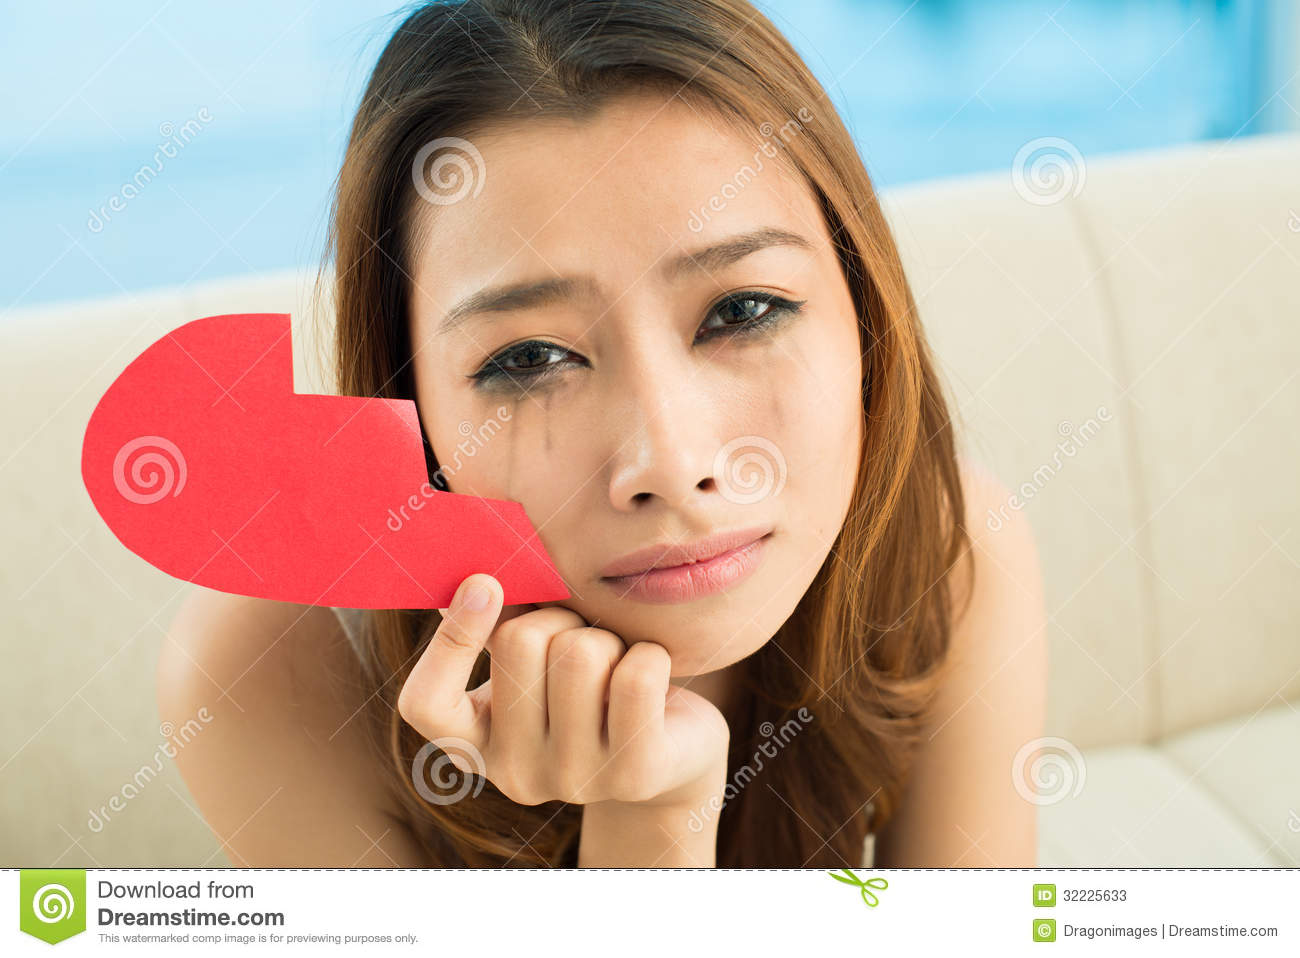 Depressed Girl Stock Image Image Of People Heart Girlfriend